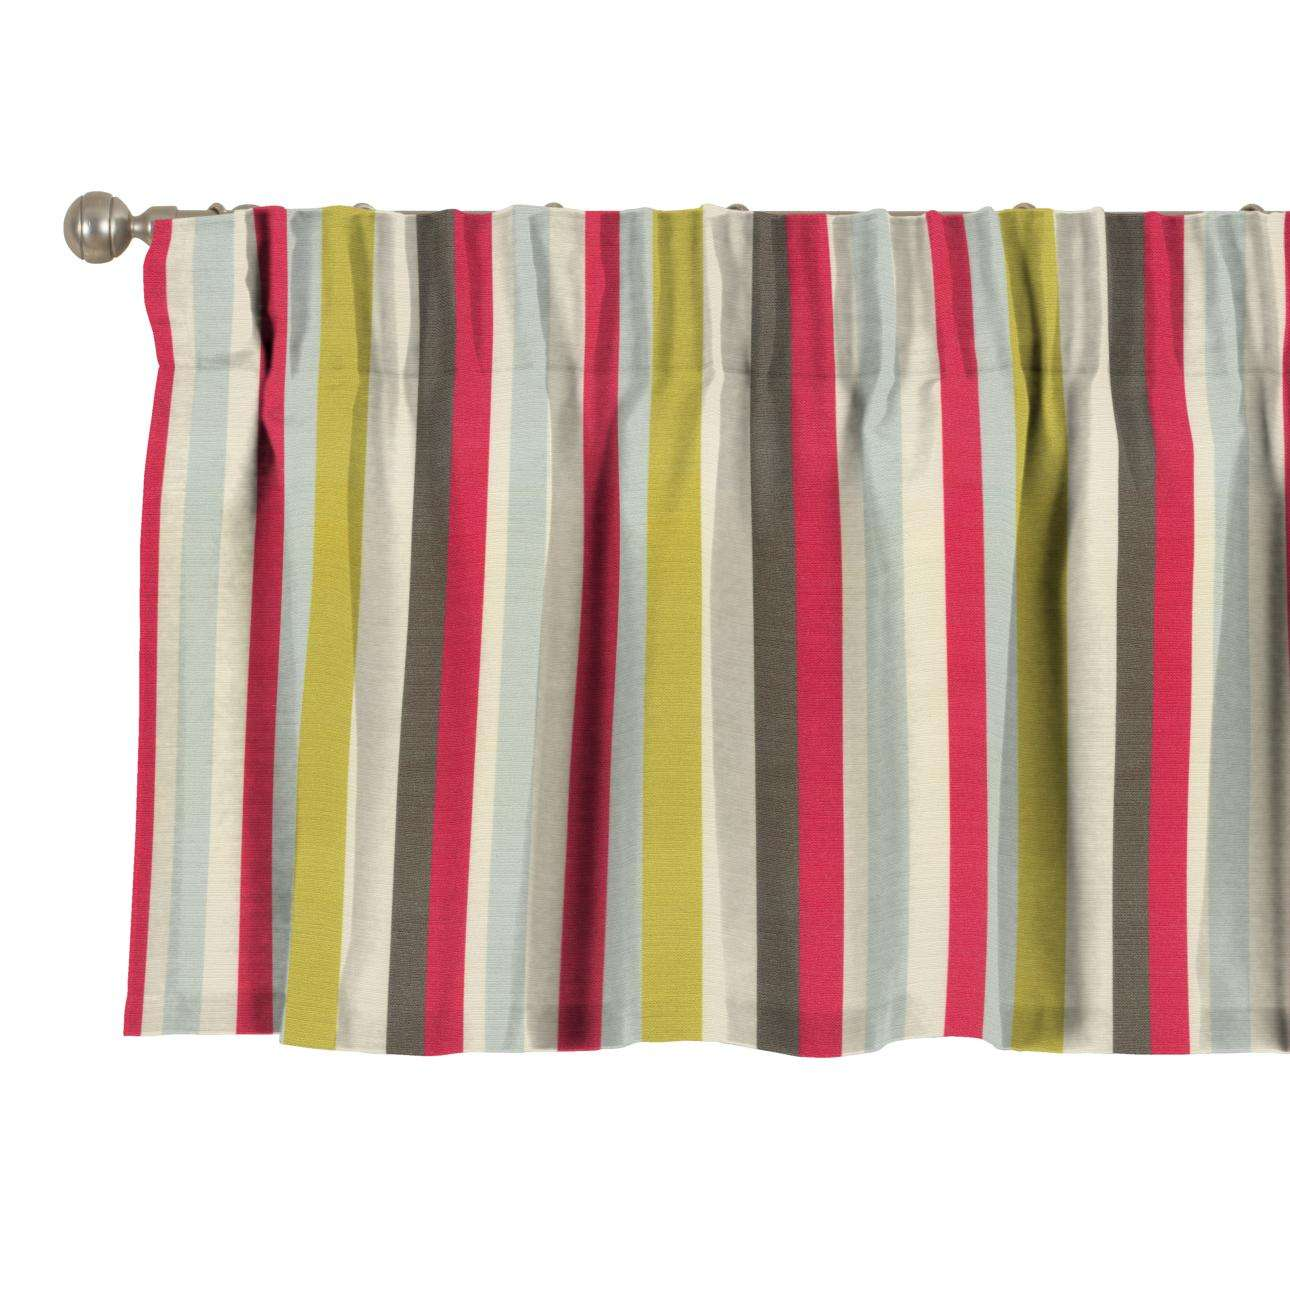 Pencil pleat pelmet 130 x 40 cm (51 x 16 inch) in collection Flowers, fabric: 140-81